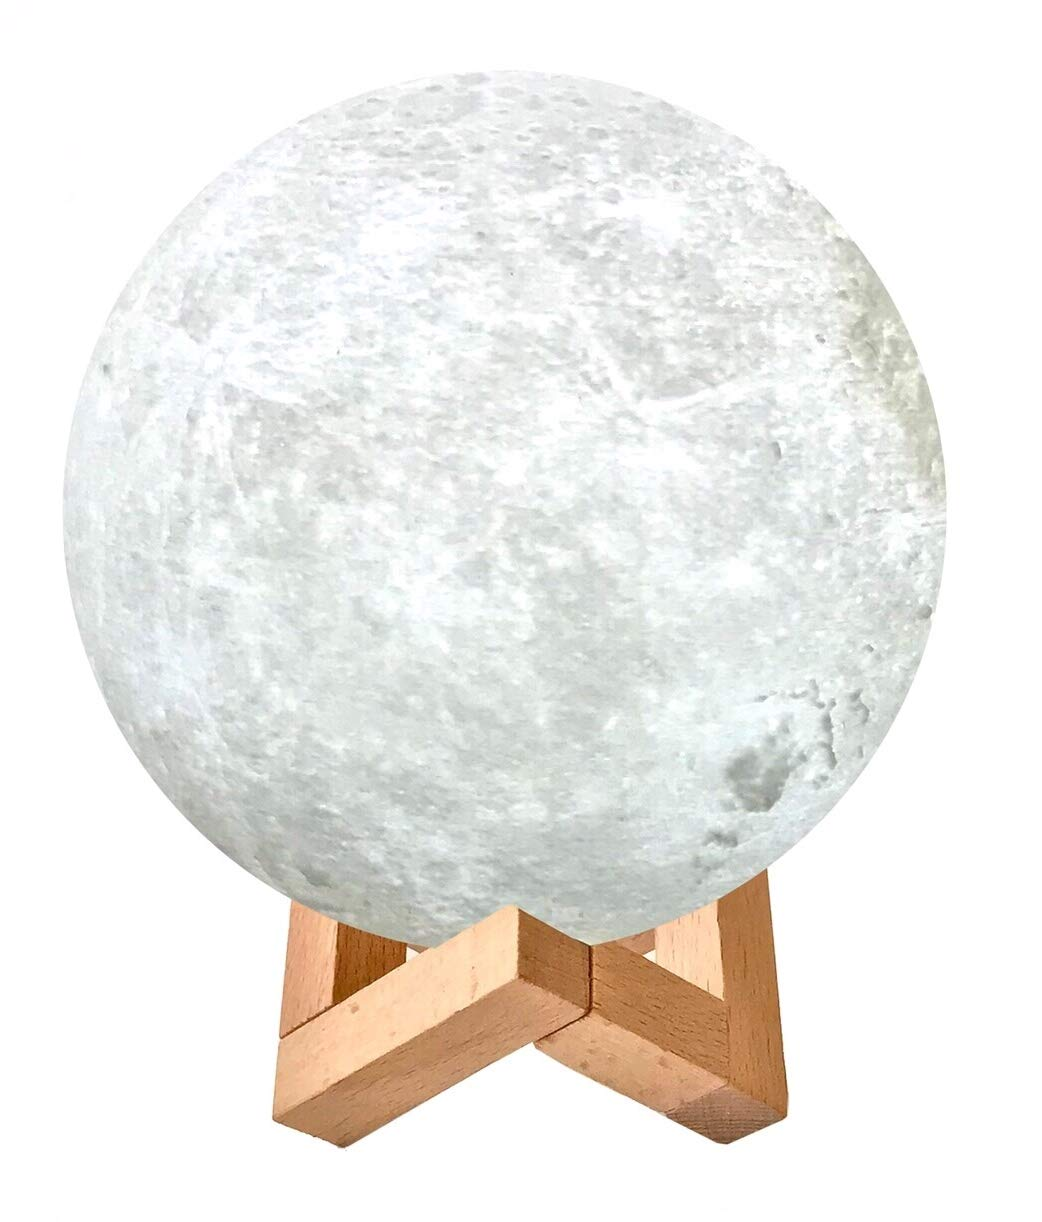 3D Printed 16 Color LED Moon Lamp with Stand. Multicolor RGB Remote Touch Control Decorative Moon Lamp Nightlight Kids Gift with Wooden Stand. USB Charge Adjustable Brightness